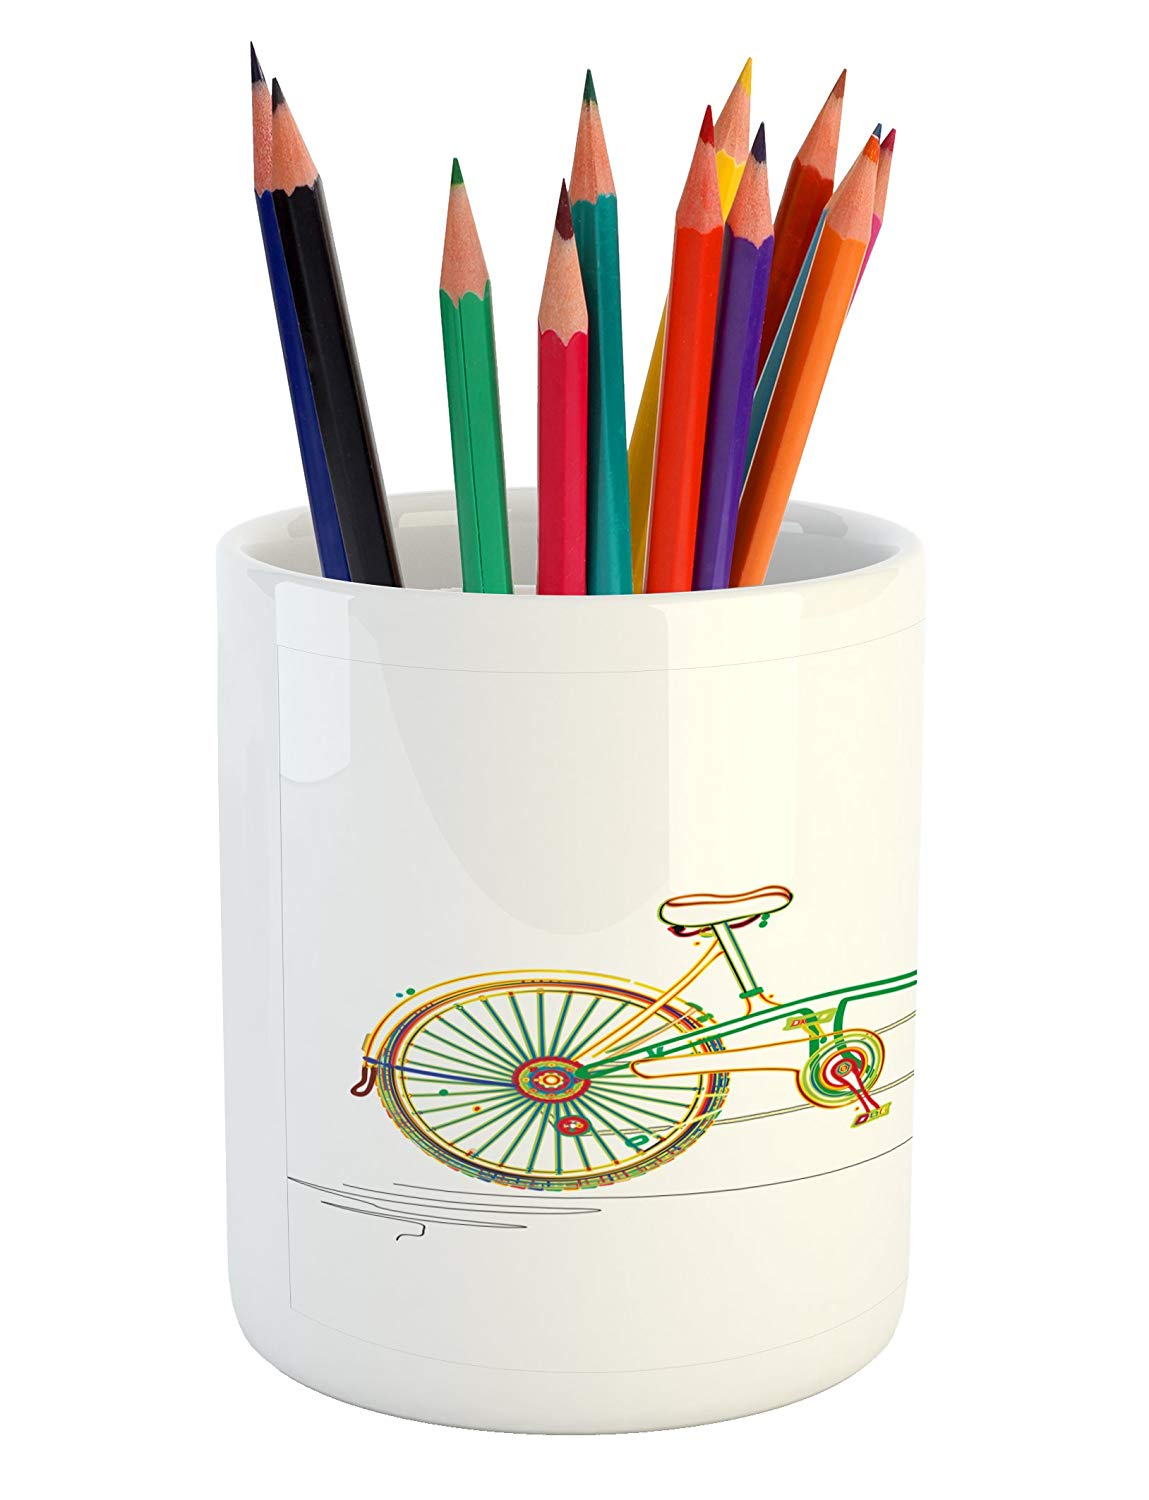 Pen holder clipart picture library stock Amazon.com: Ambesonne Bicycle Pencil Pen Holder, Colorful ... picture library stock